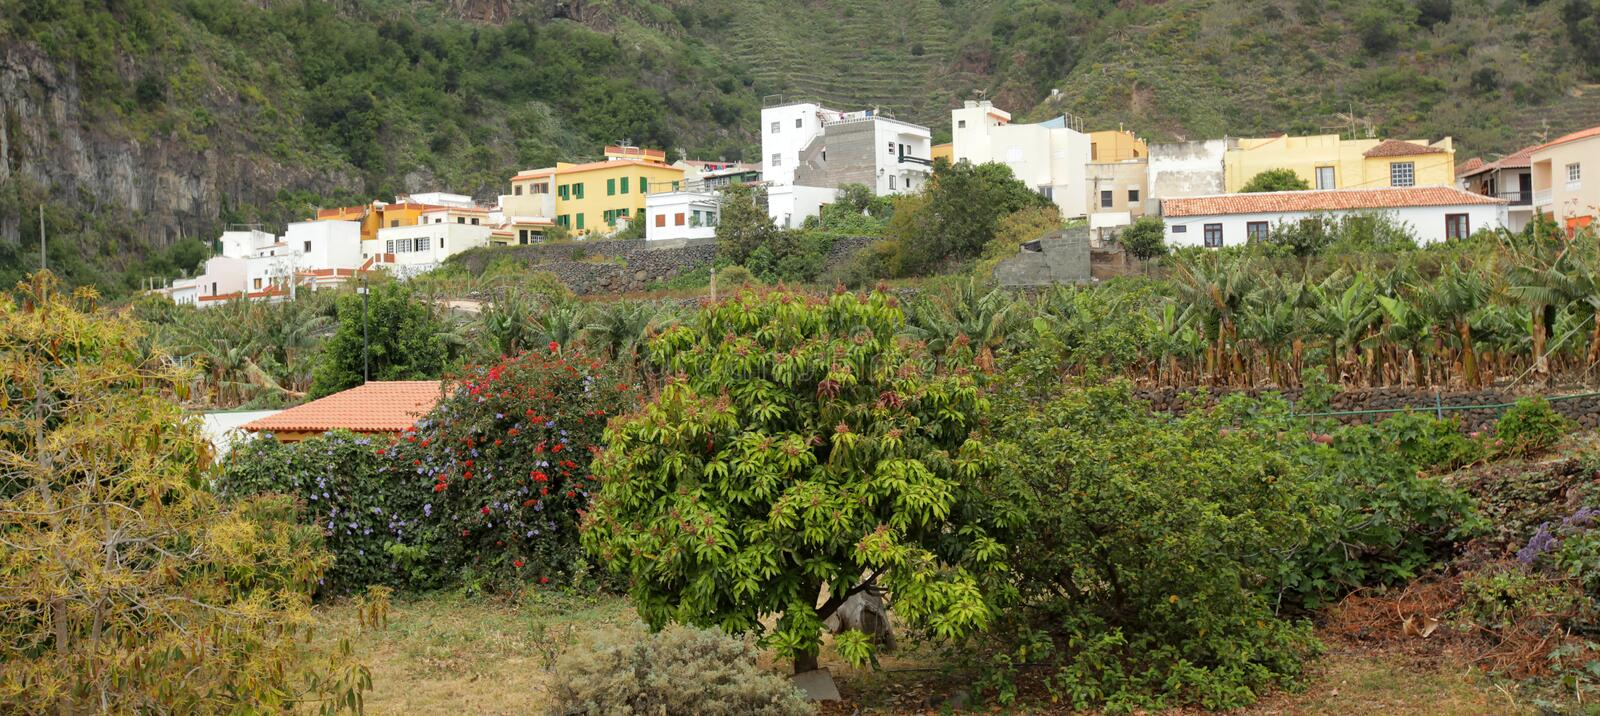 Hillside homes in Vallehermoso royalty free stock photography